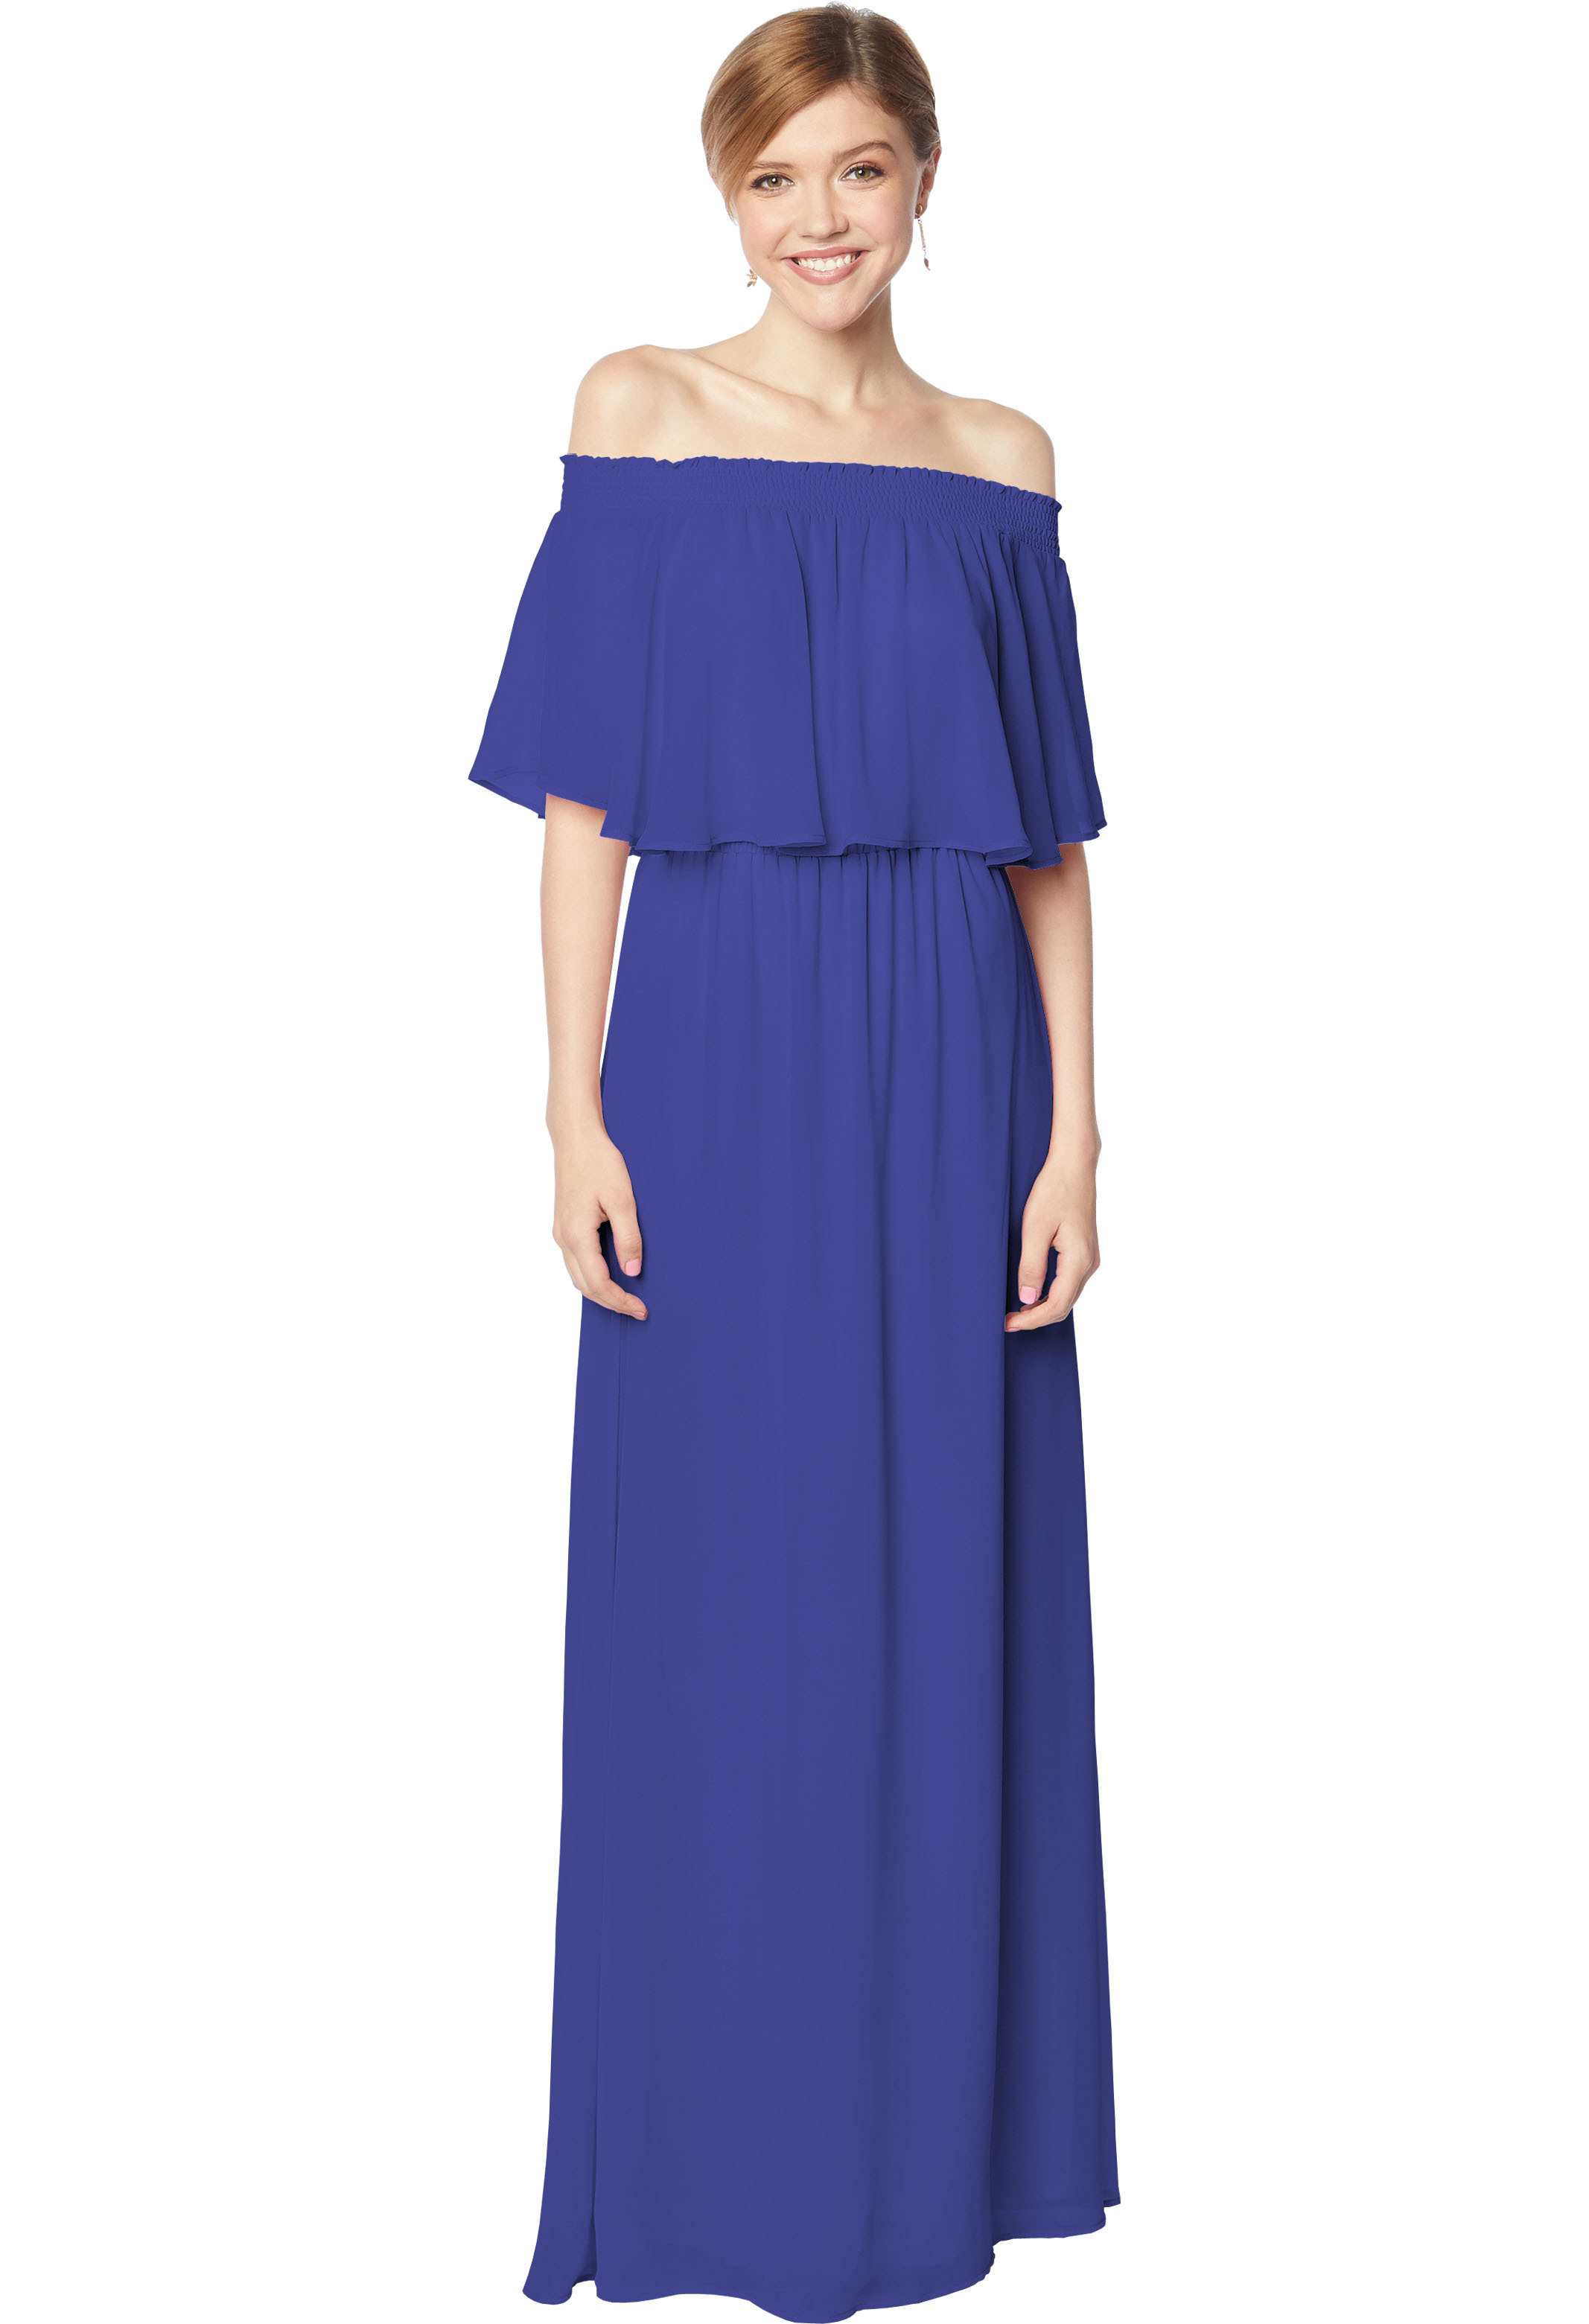 Bill Levkoff MARINE Chiffon Off The Shoulder A-line gown, $210.00 Front